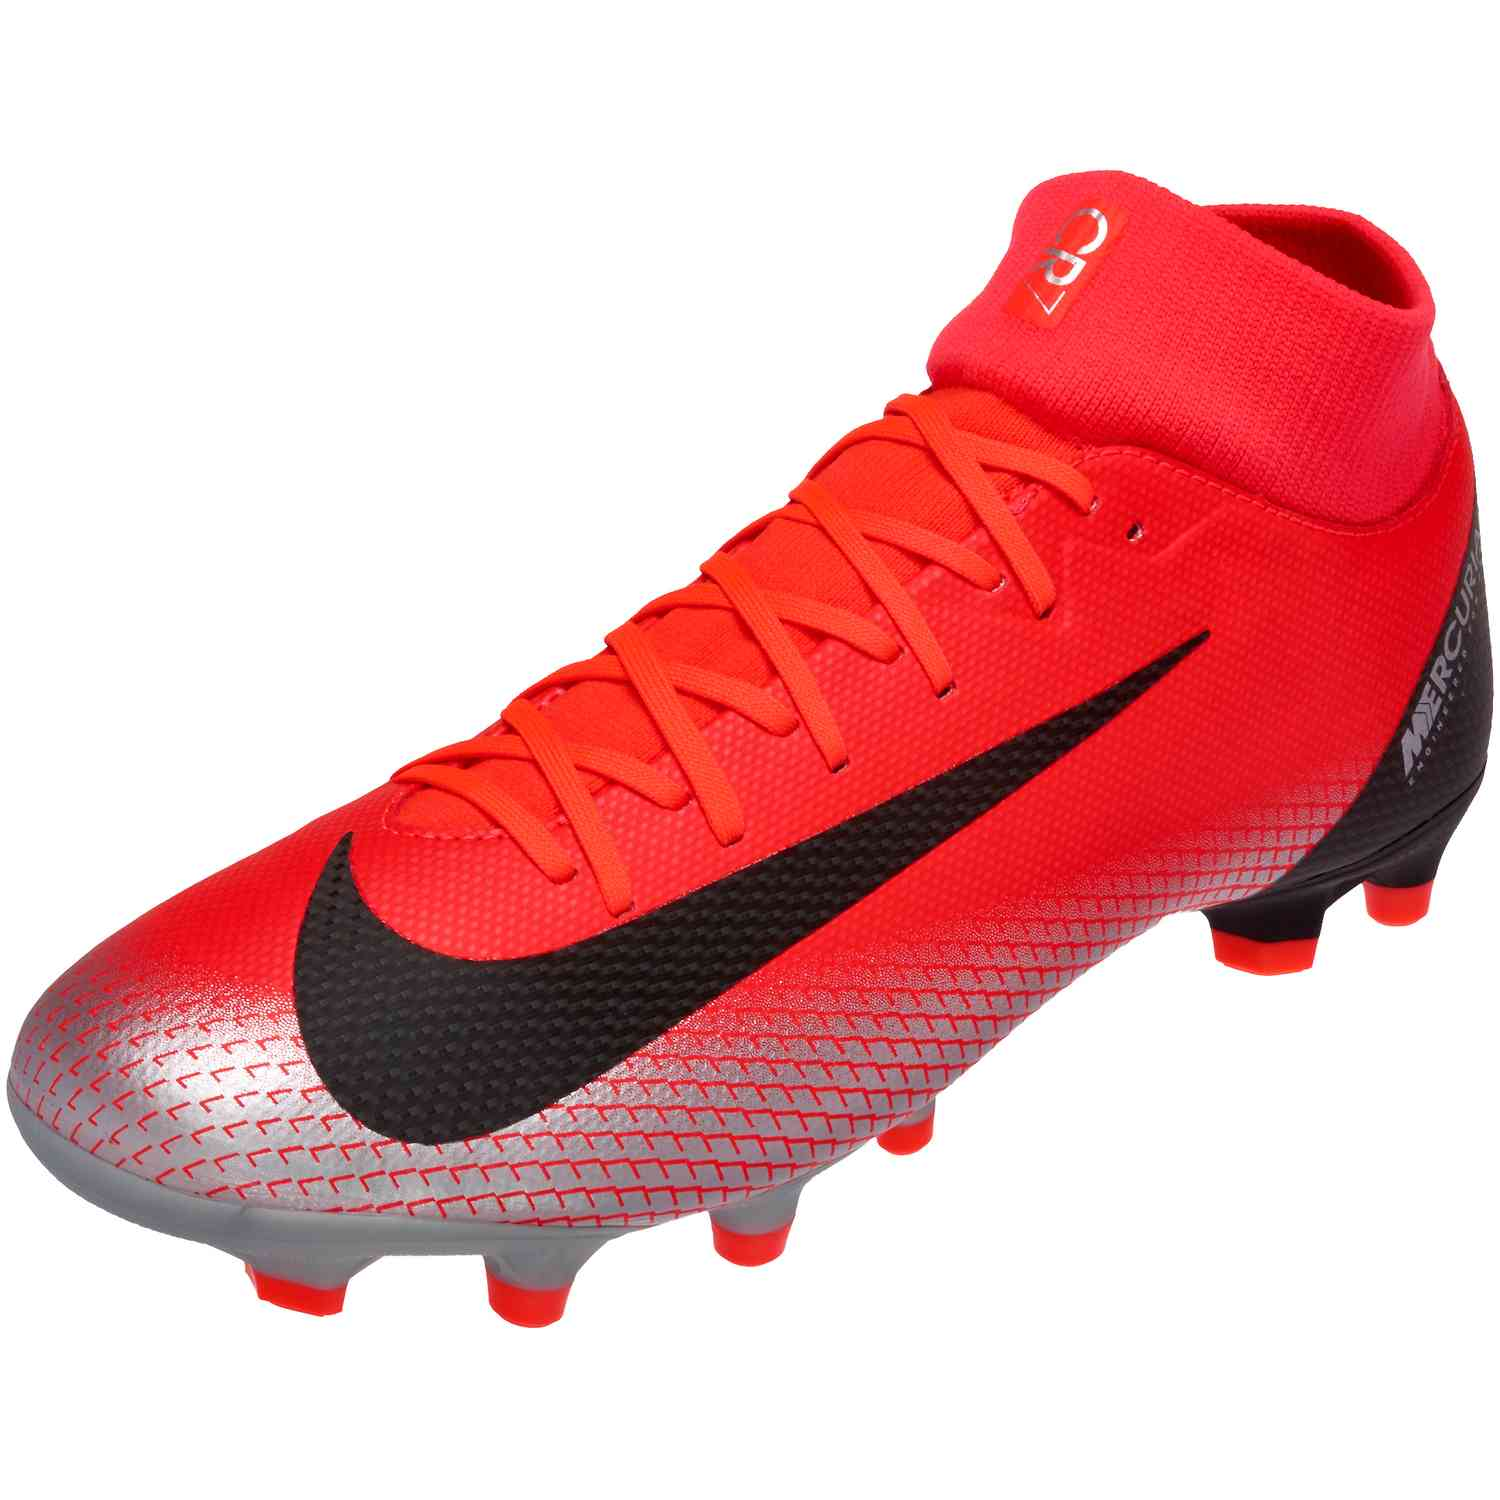 8791f2a8989 Nike CR7 Mercurial Superfly 6 Academy FG - Chapter 7 - SoccerPro